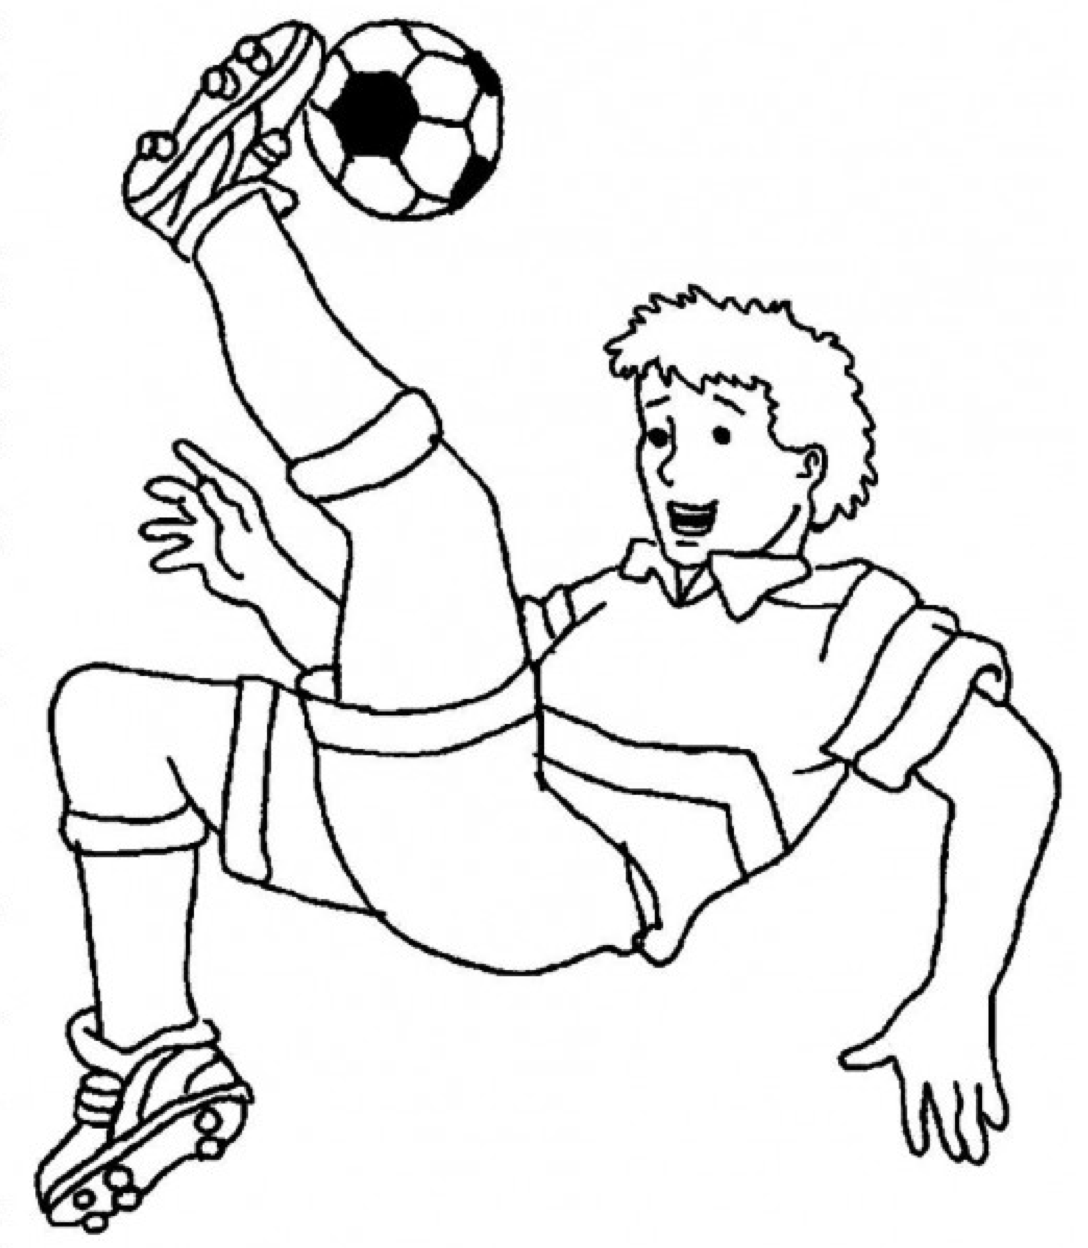 football coloring pages online a boy with perfect ball handling on soccer game coloring football online pages coloring